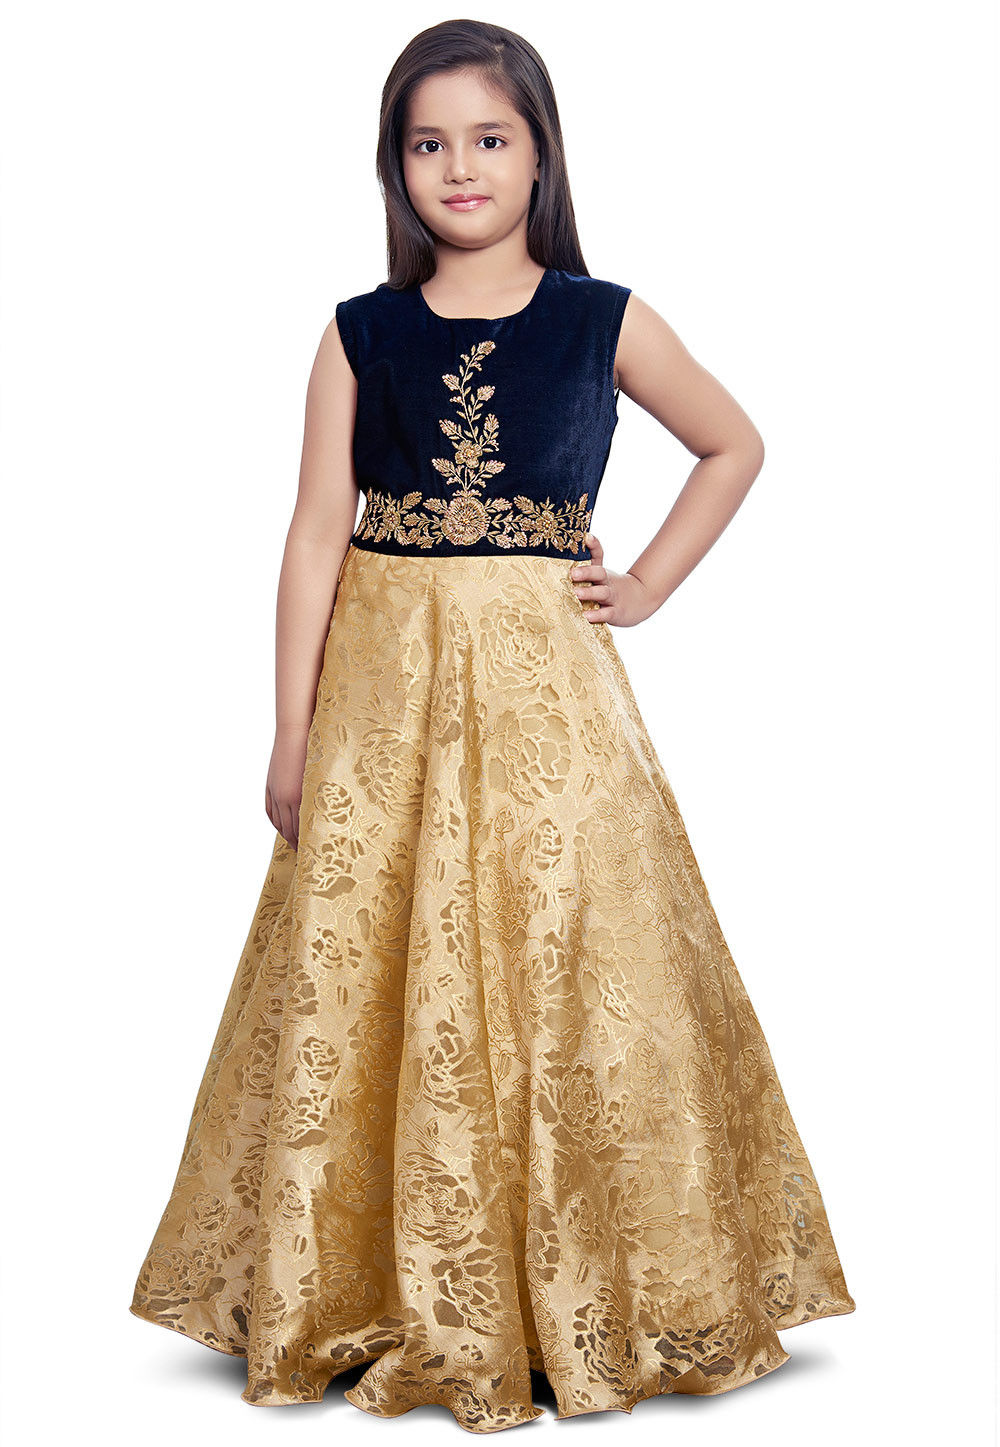 Embroidered Net Jacquard Gown in Beige and Navy Blue : UKU810